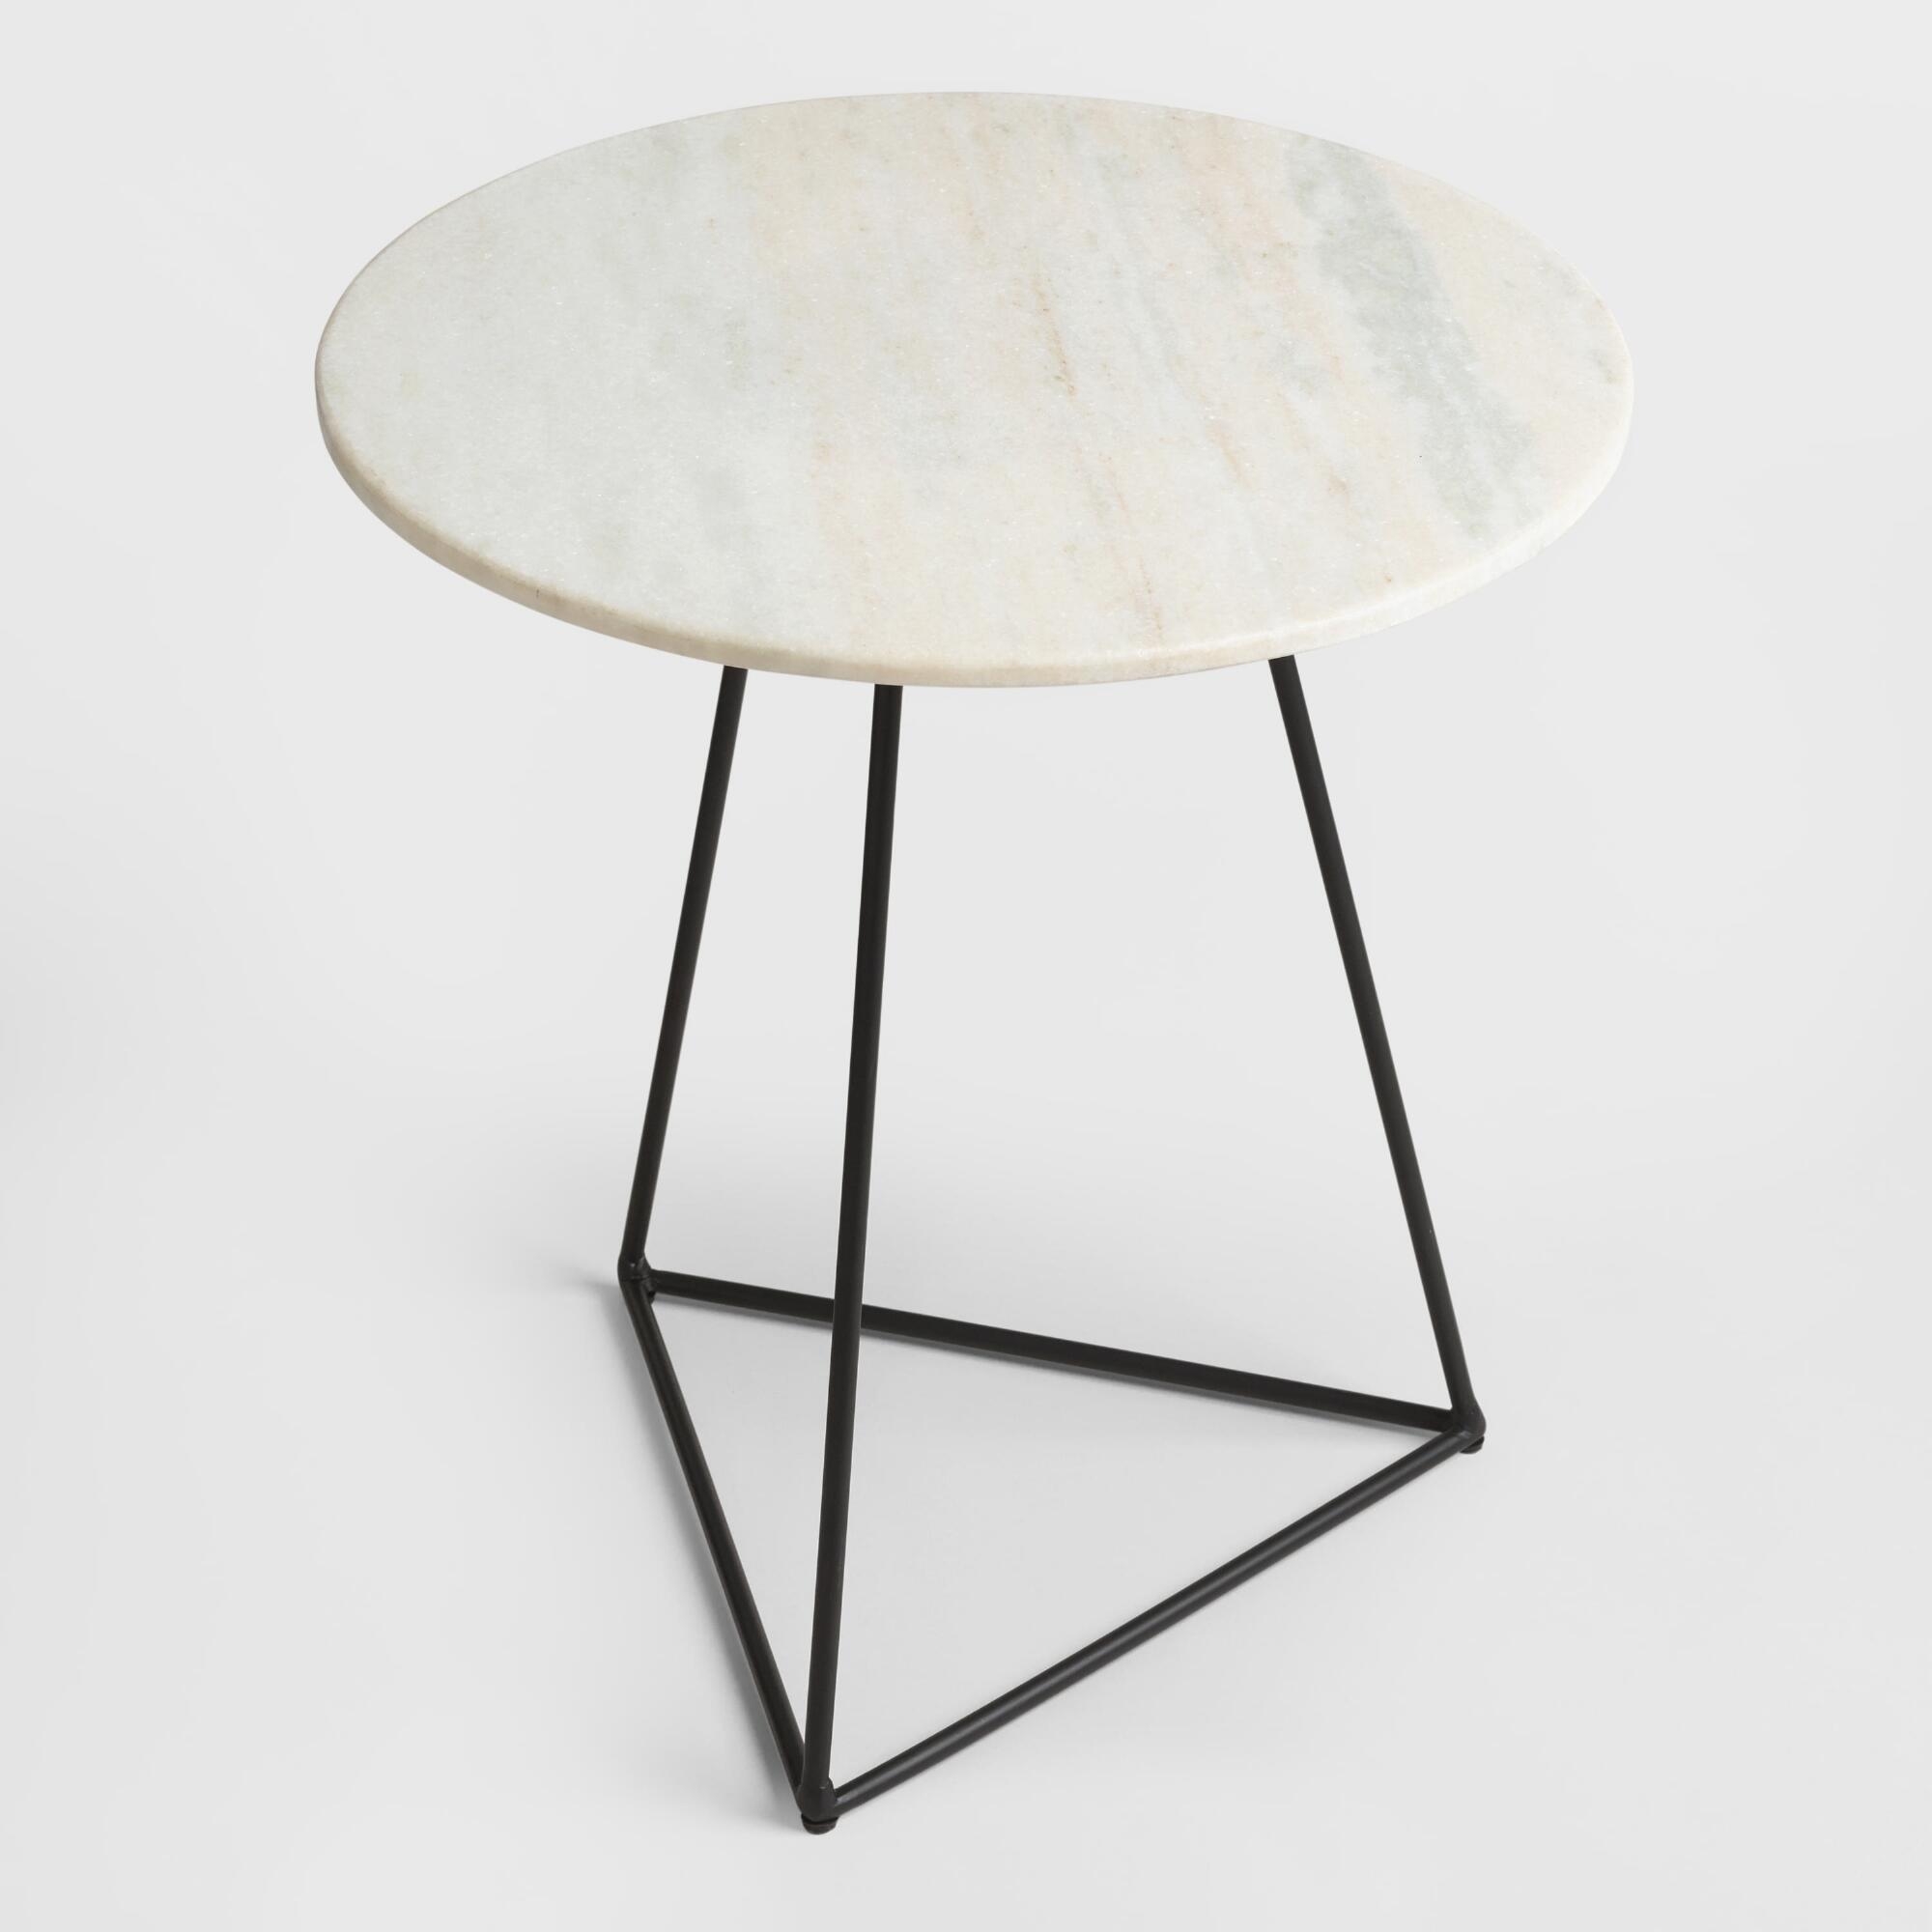 white marble and metal round accent table world market products steel furniture legs modern side lamp ice cooler bar mosaic outdoor dining victorian lamps plant pedestal bedside